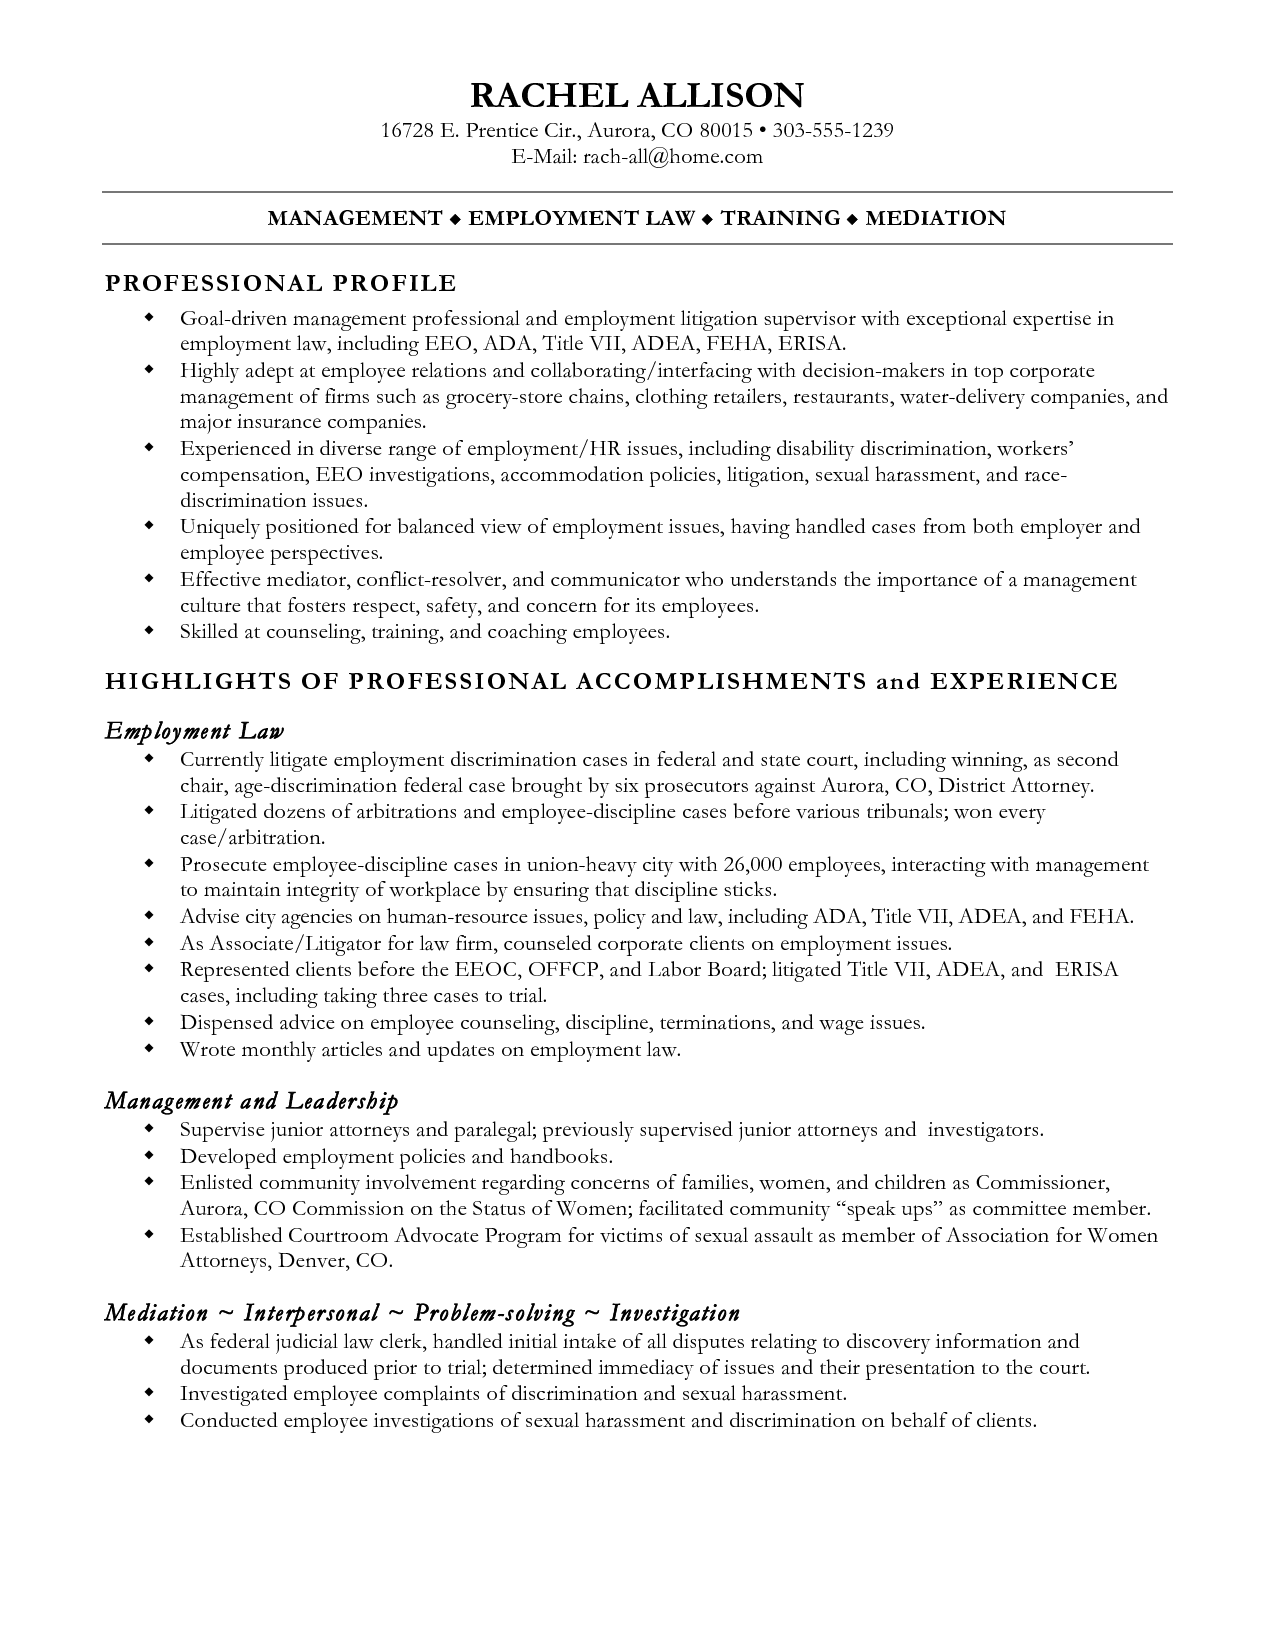 functional resume uses slideshare - Functional Resumes Samples